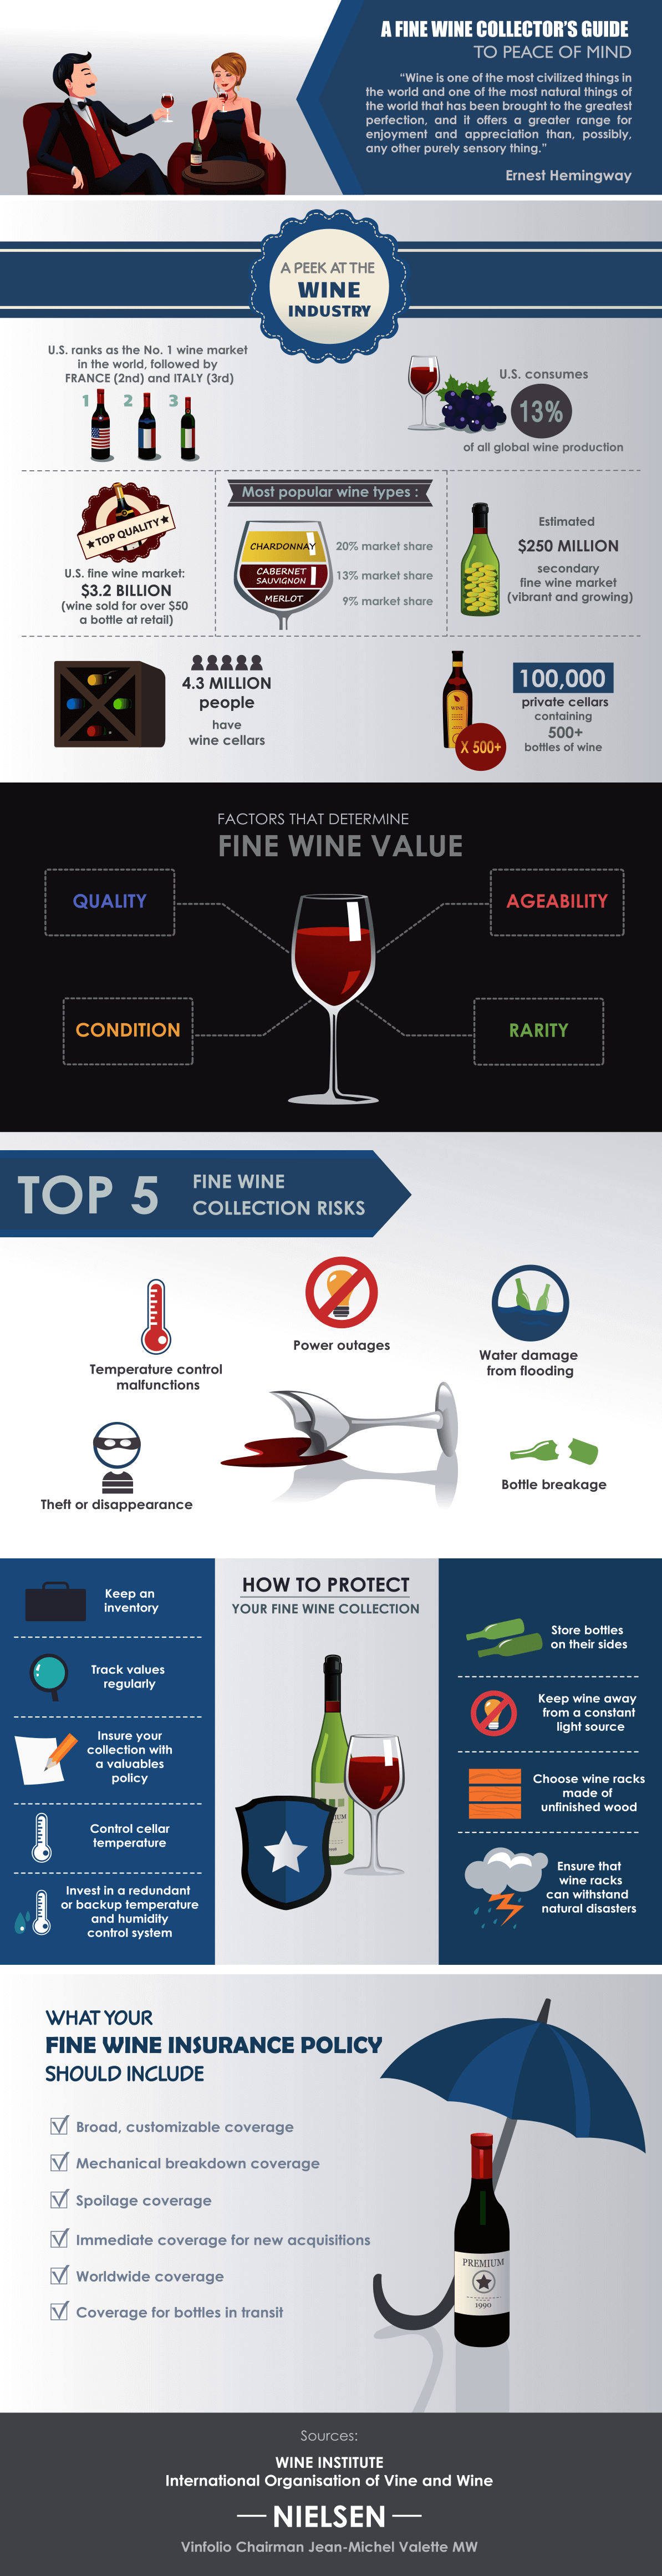 NAP Wine Collectors Infographic